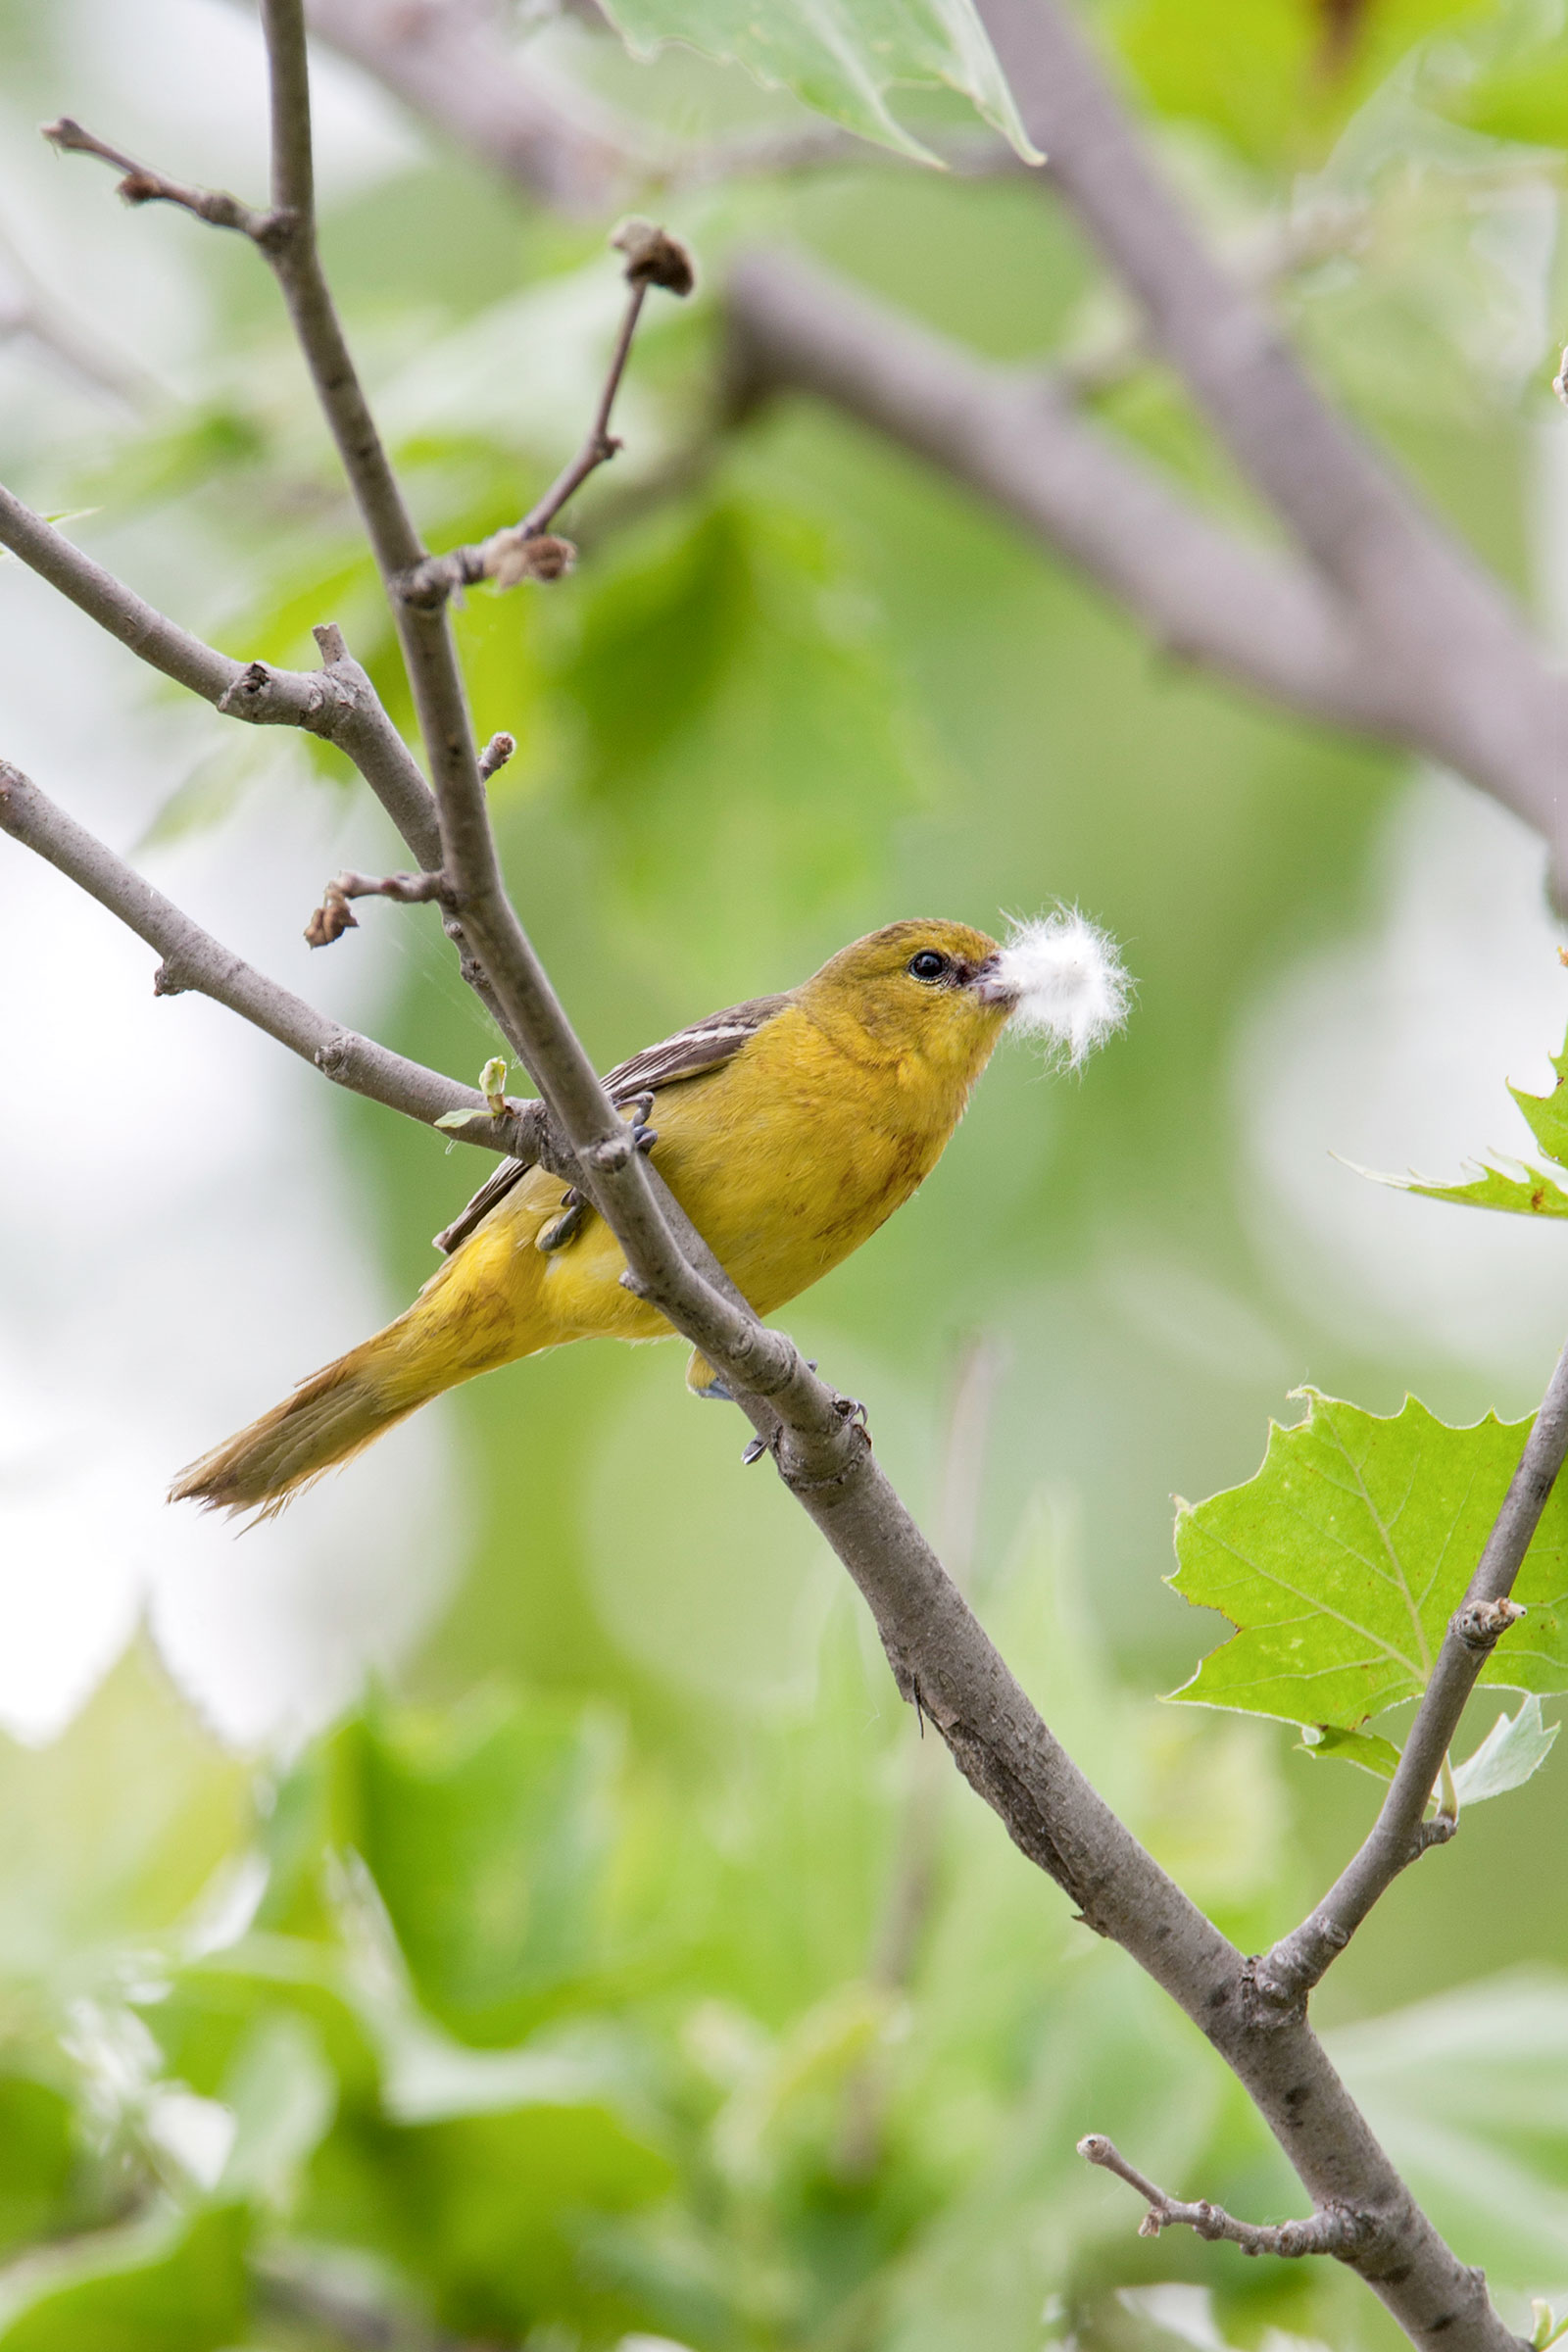 Female Orchard Oriole collecting nest material. William Leaman/Alamy